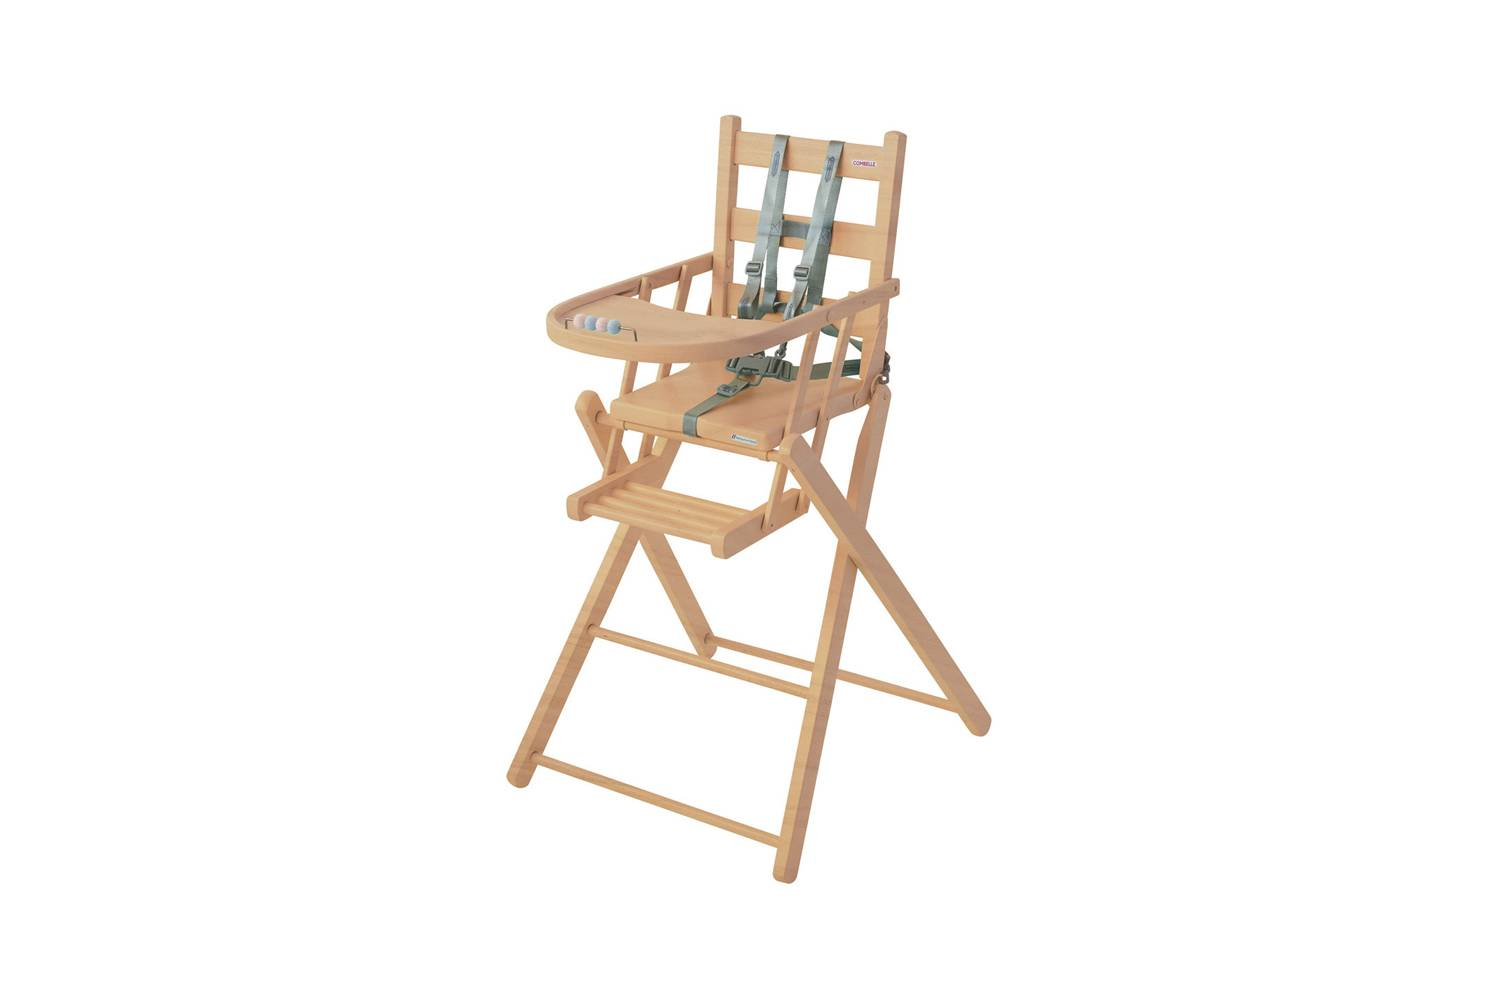 The Combelle Sarah Folding High Chair in Natural is $9 at Smallable.